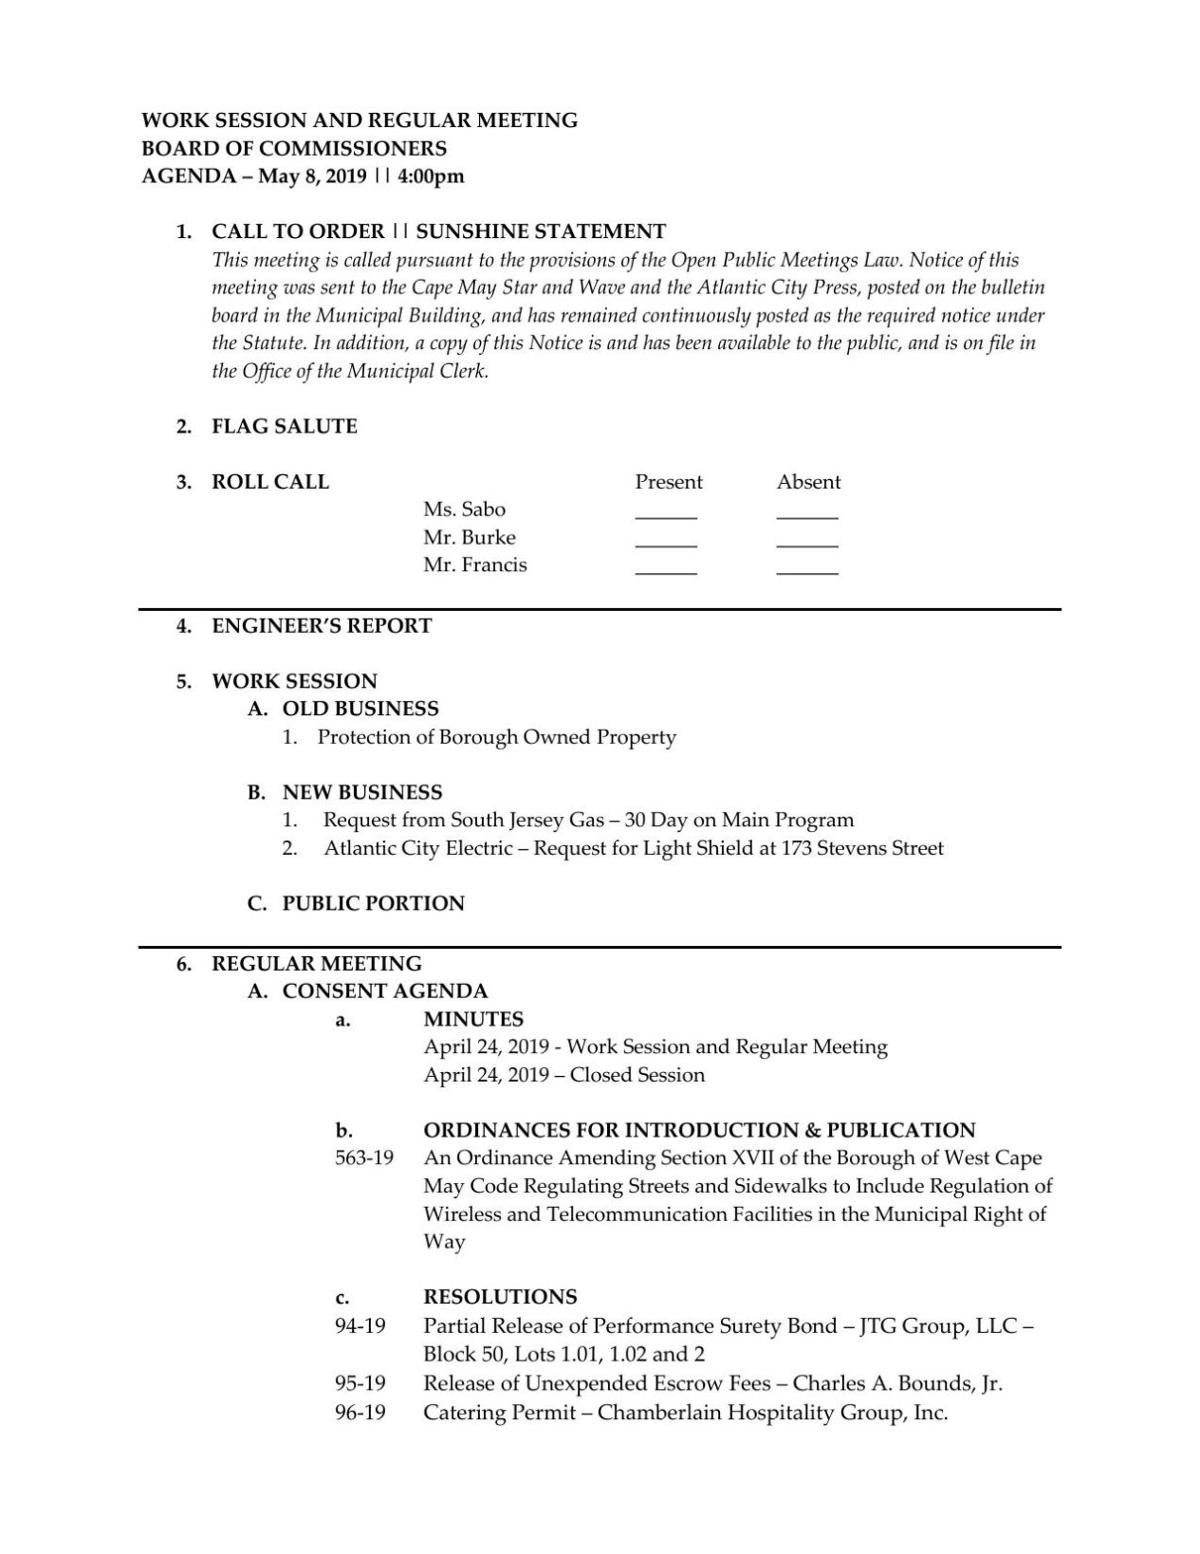 West Cape May Board of Commissioners Agenda May 8, 2019